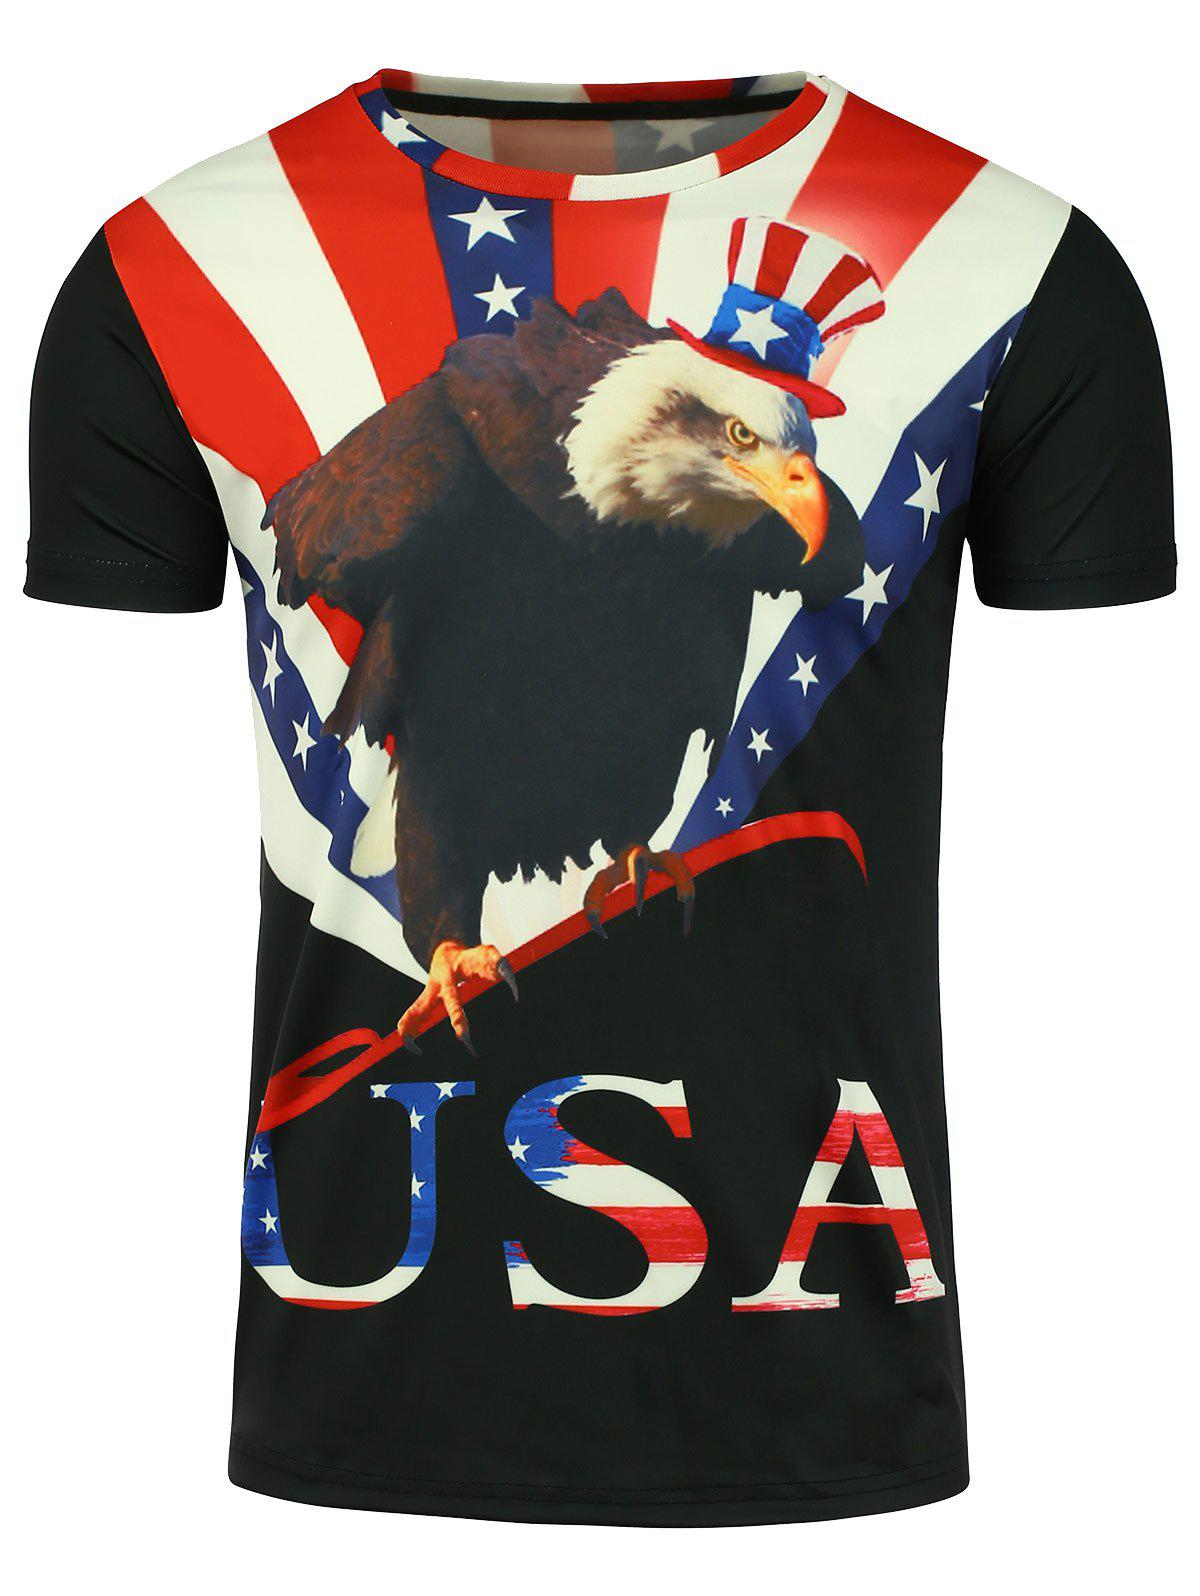 3D Eagle Graphic Print Patriotic Short Sleeve T-shirt